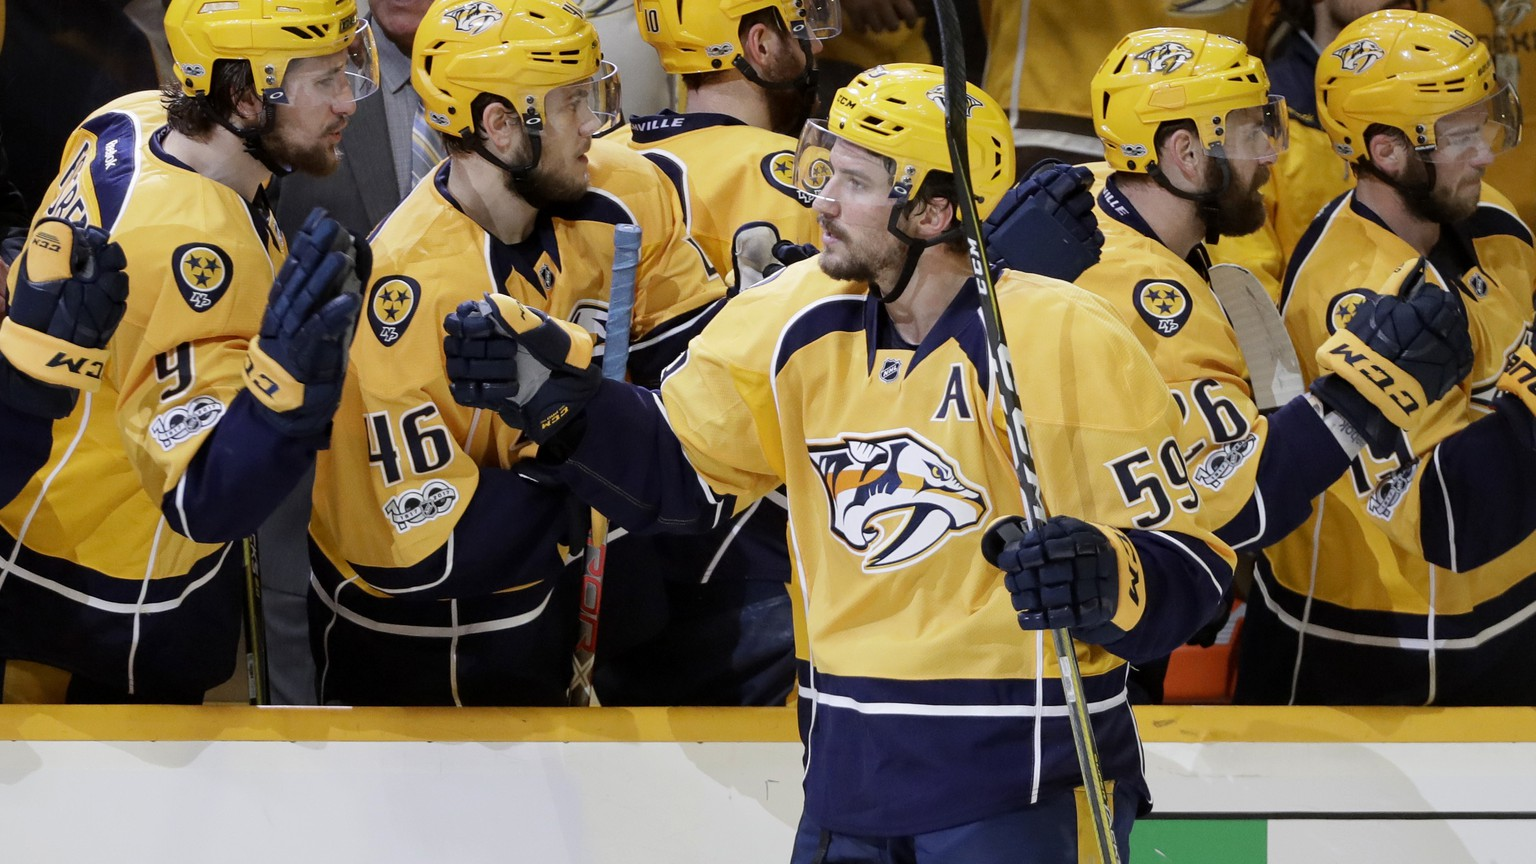 Nashville Predators defenseman Roman Josi (59), of Switzerland, is congratulated after scoring the go-ahead goal during the third period in Game 3 of the Western Conference final in the NHL hockey Stanley Cup playoffs Tuesday, May 16, 2017, in Nashville, Tenn. The Predators won 2-1. (AP Photo/Mark Humphrey)